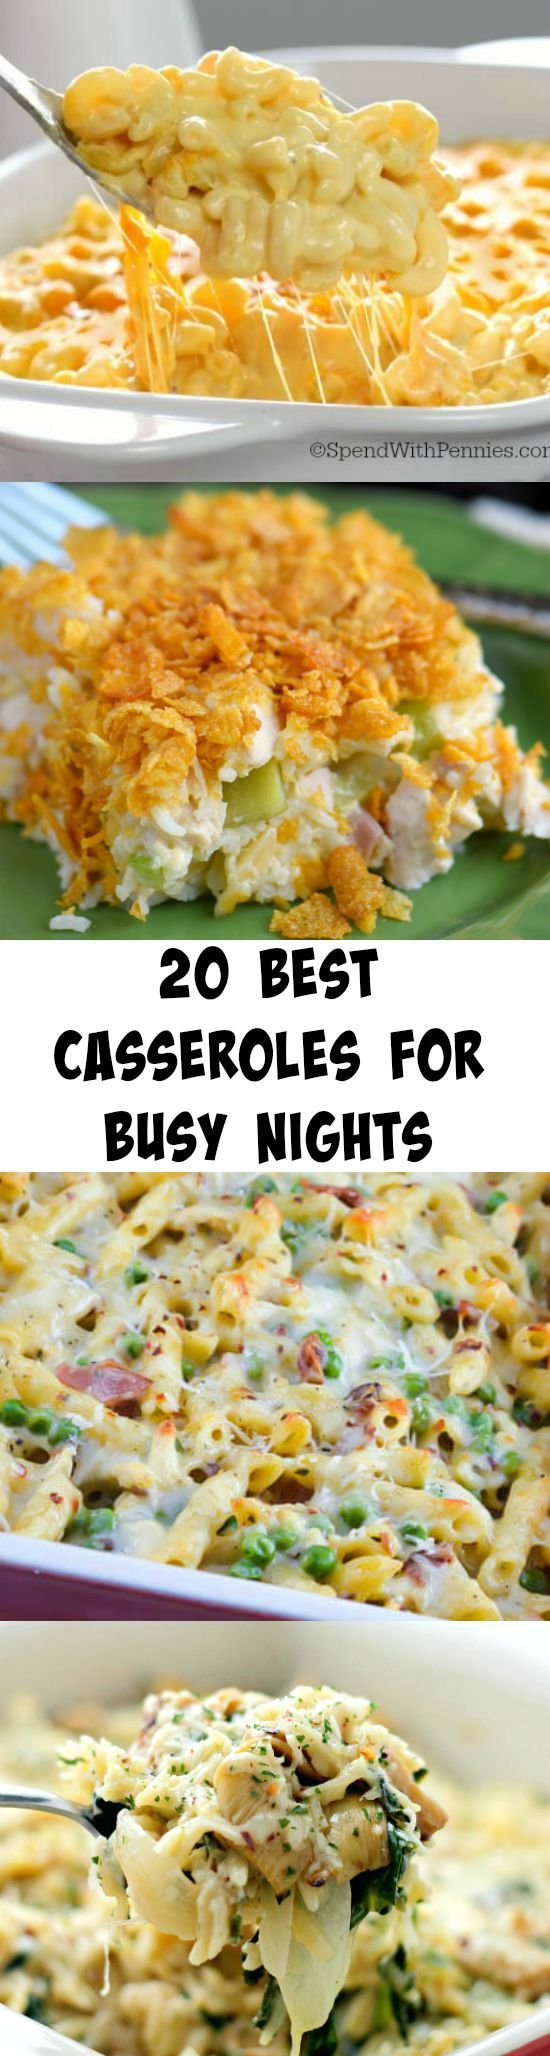 where to buy nike running shoes Everyone needs these recipes    20 of the BEST Casseroles for Busy Nights